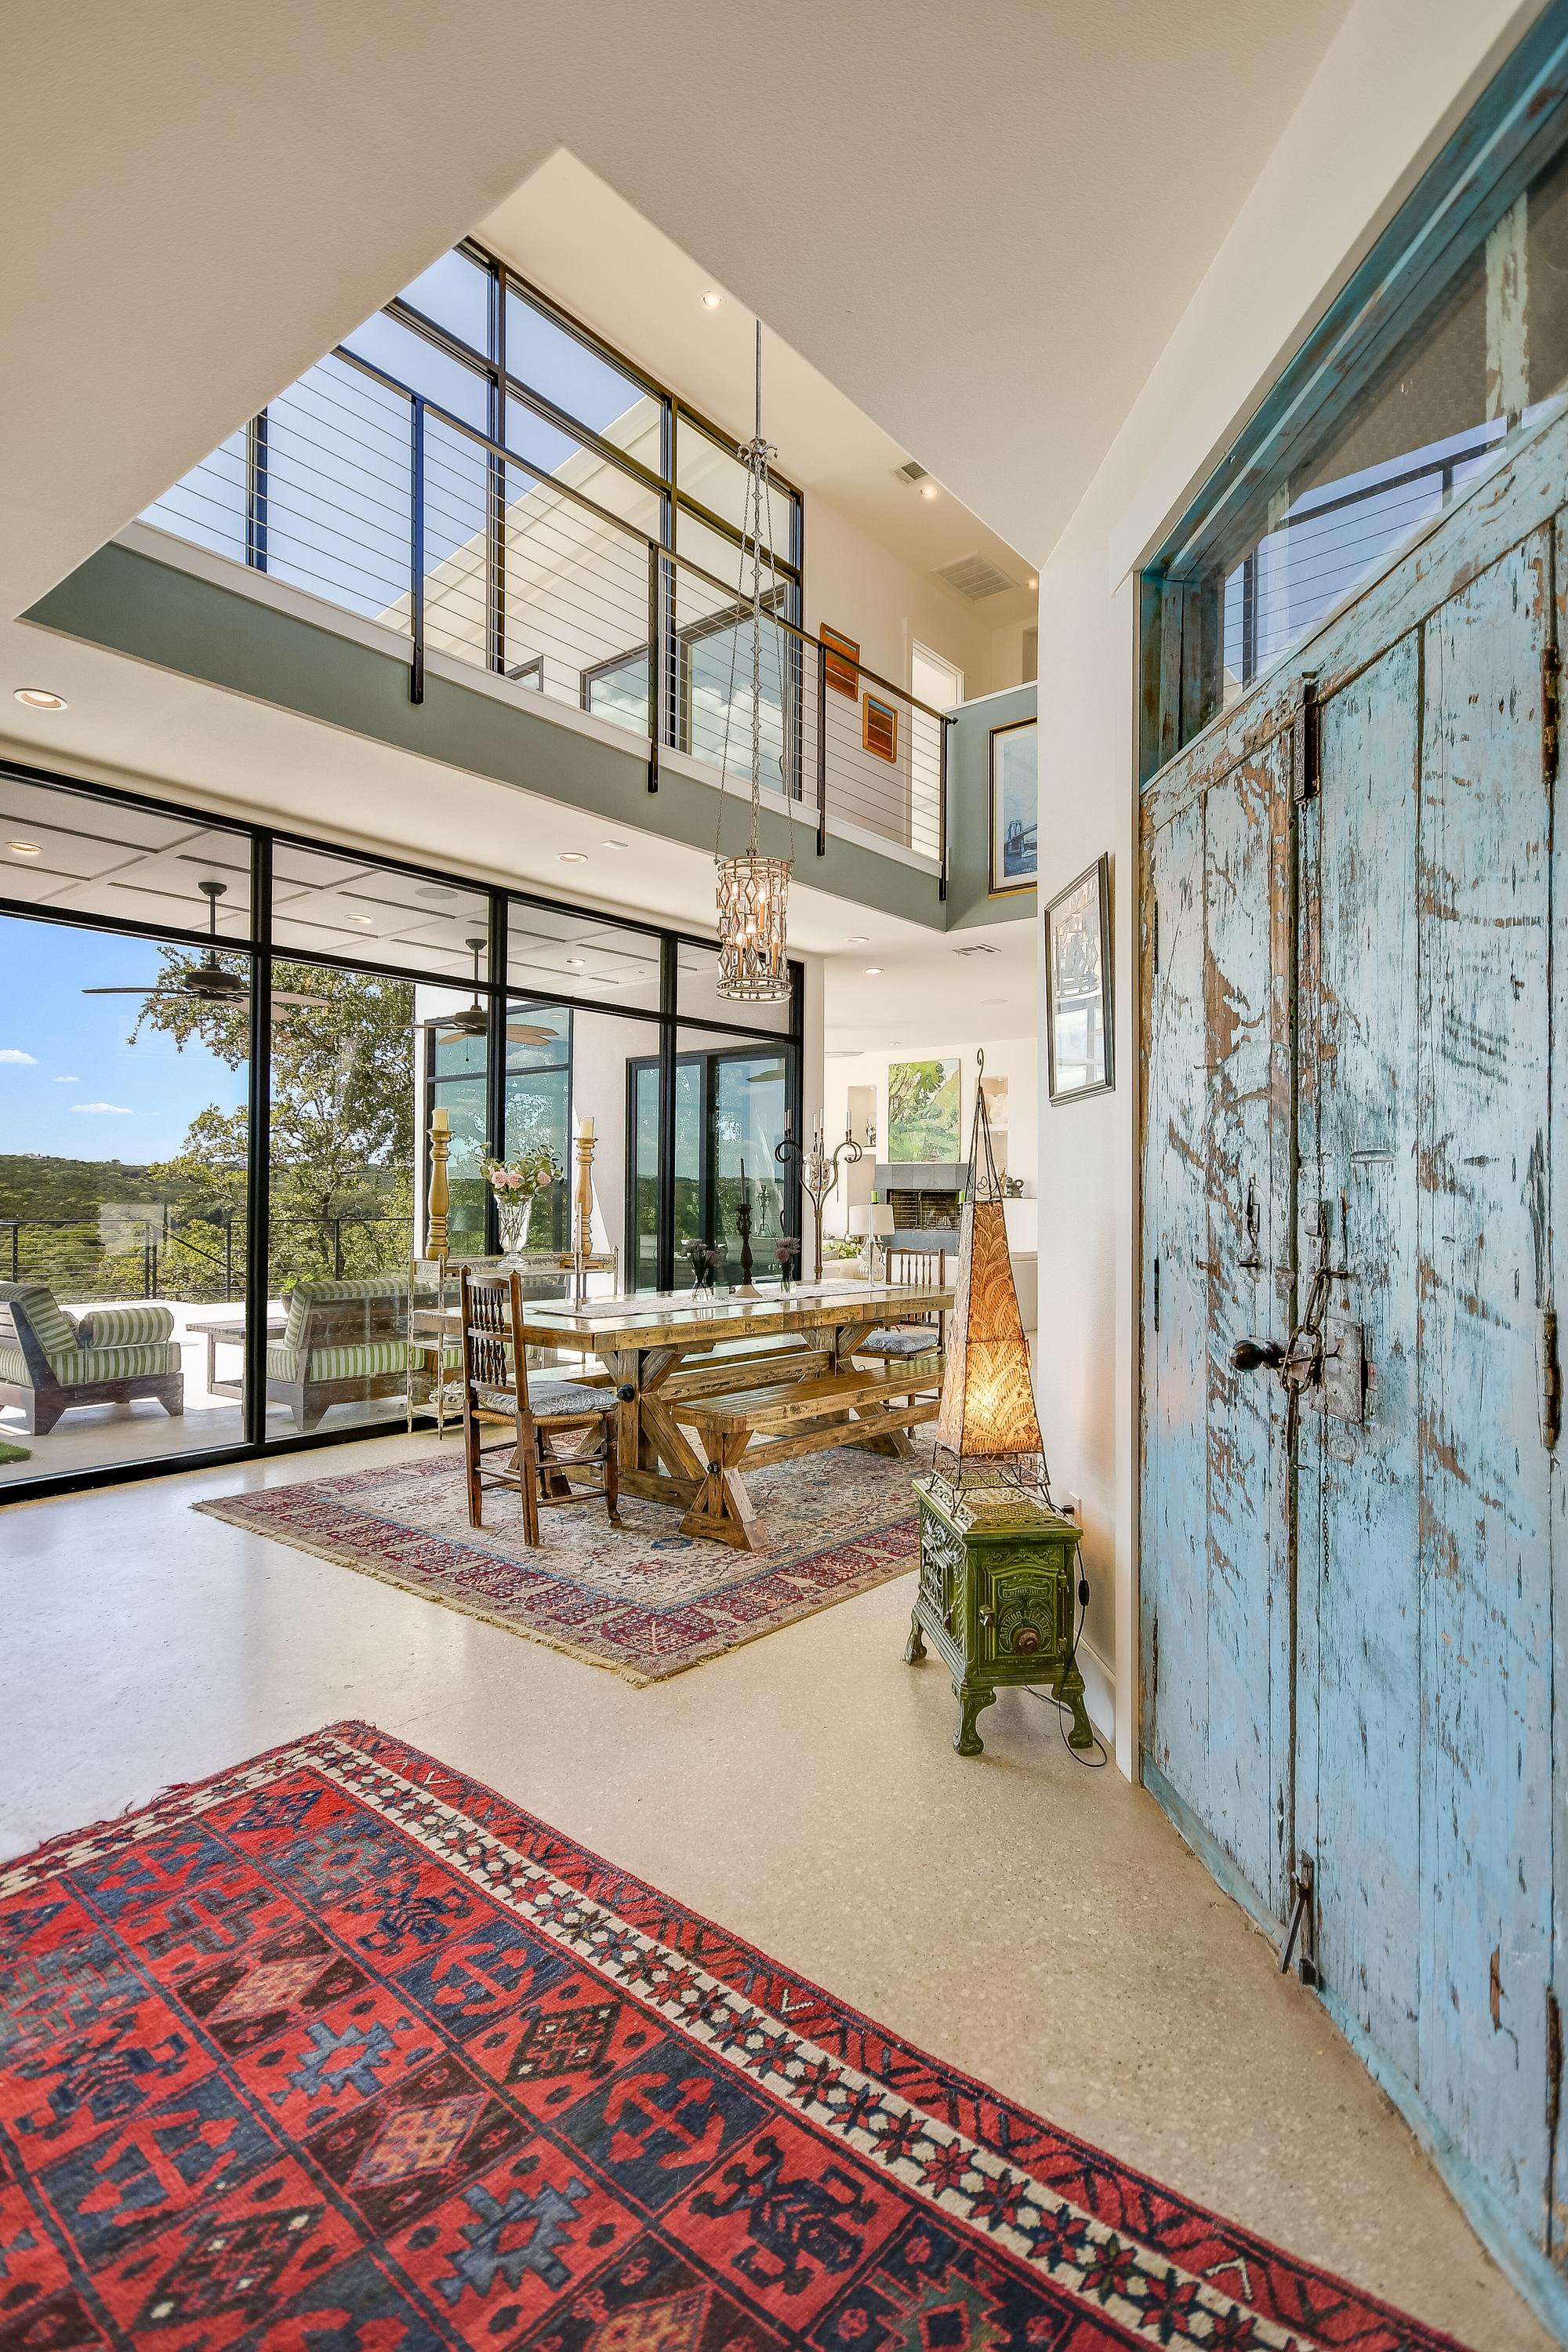 Spacious dining room area with views of the hill country